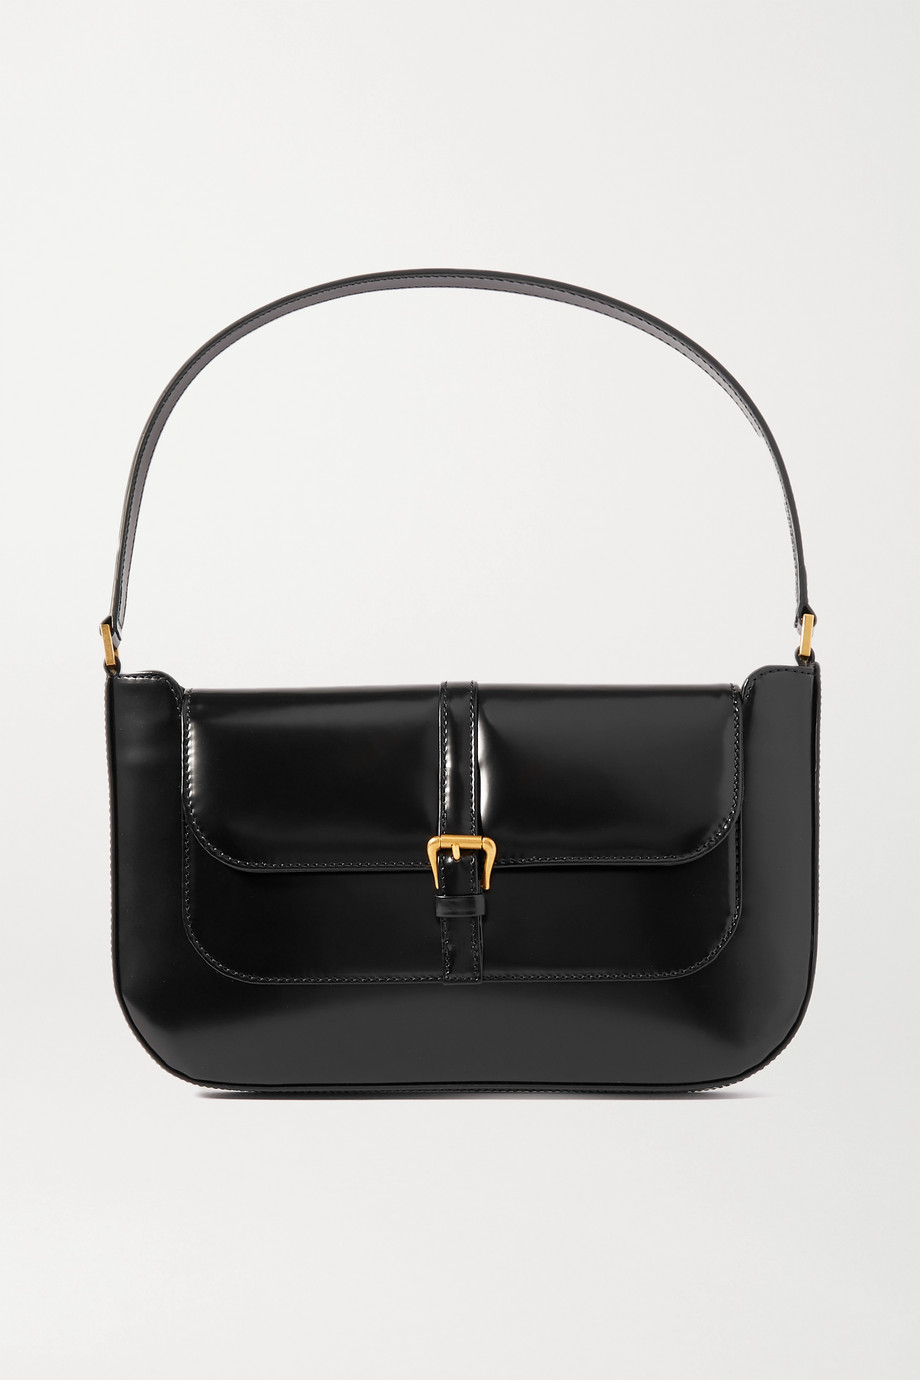 BY FAR Miranda glossed-leather shoulder bag